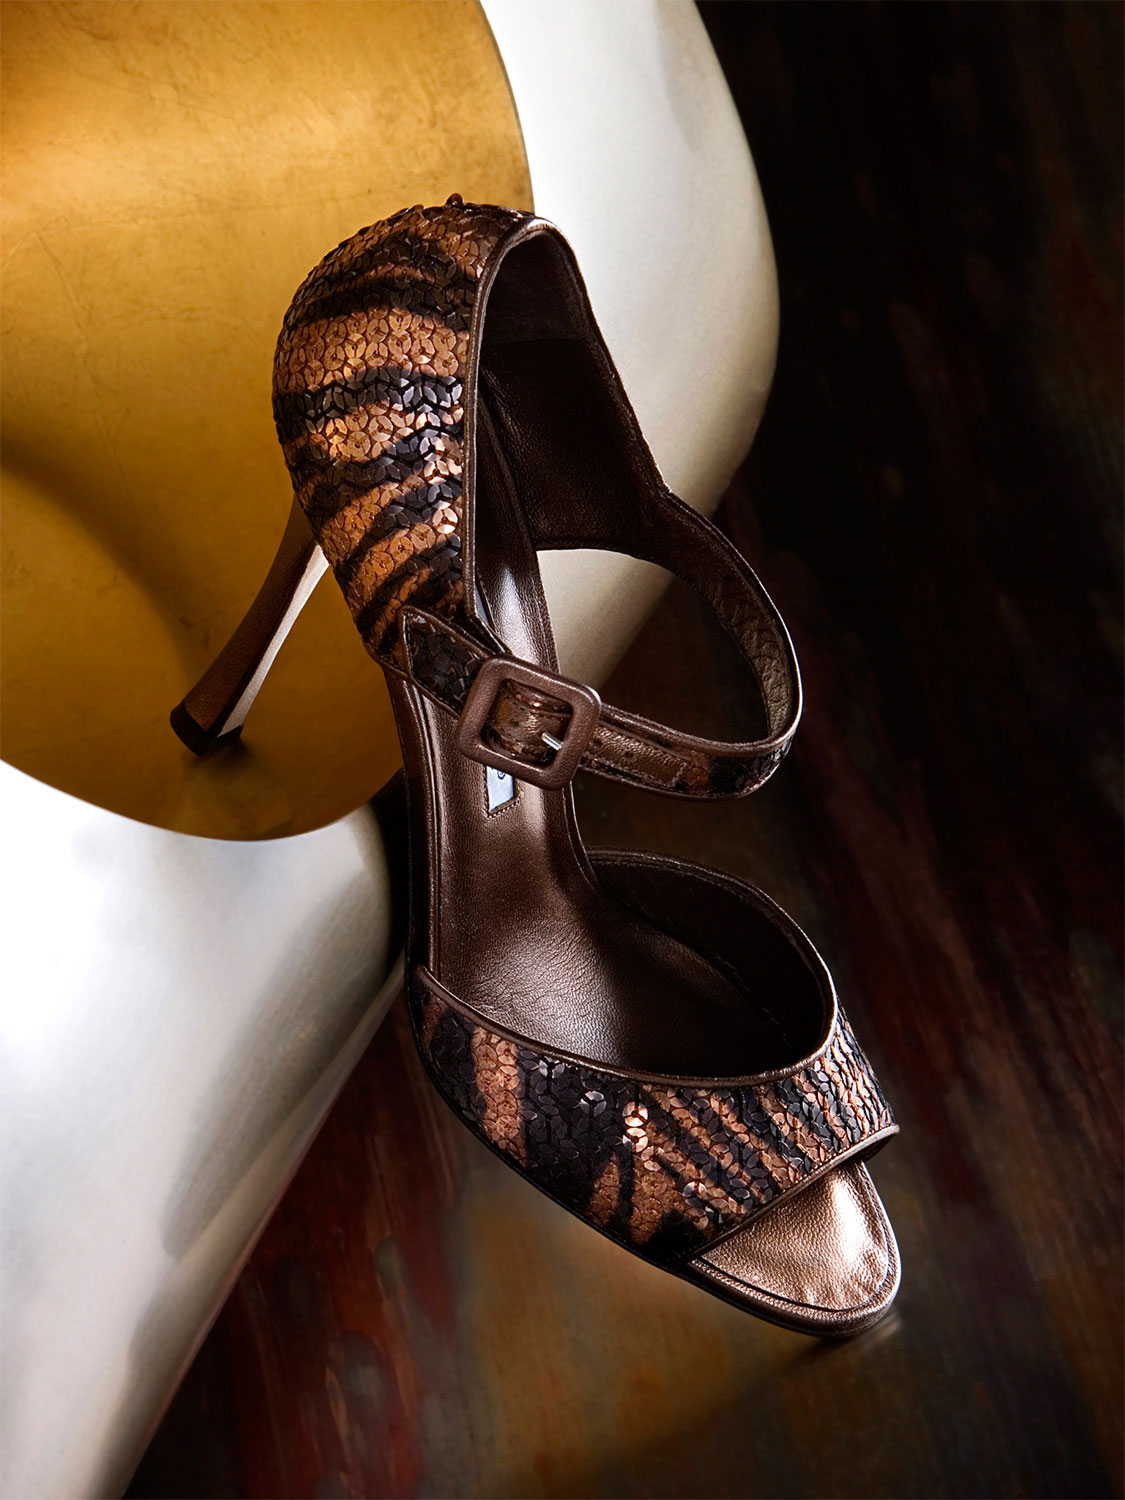 E Commerce Product Photography of High Heels Dallas Texas